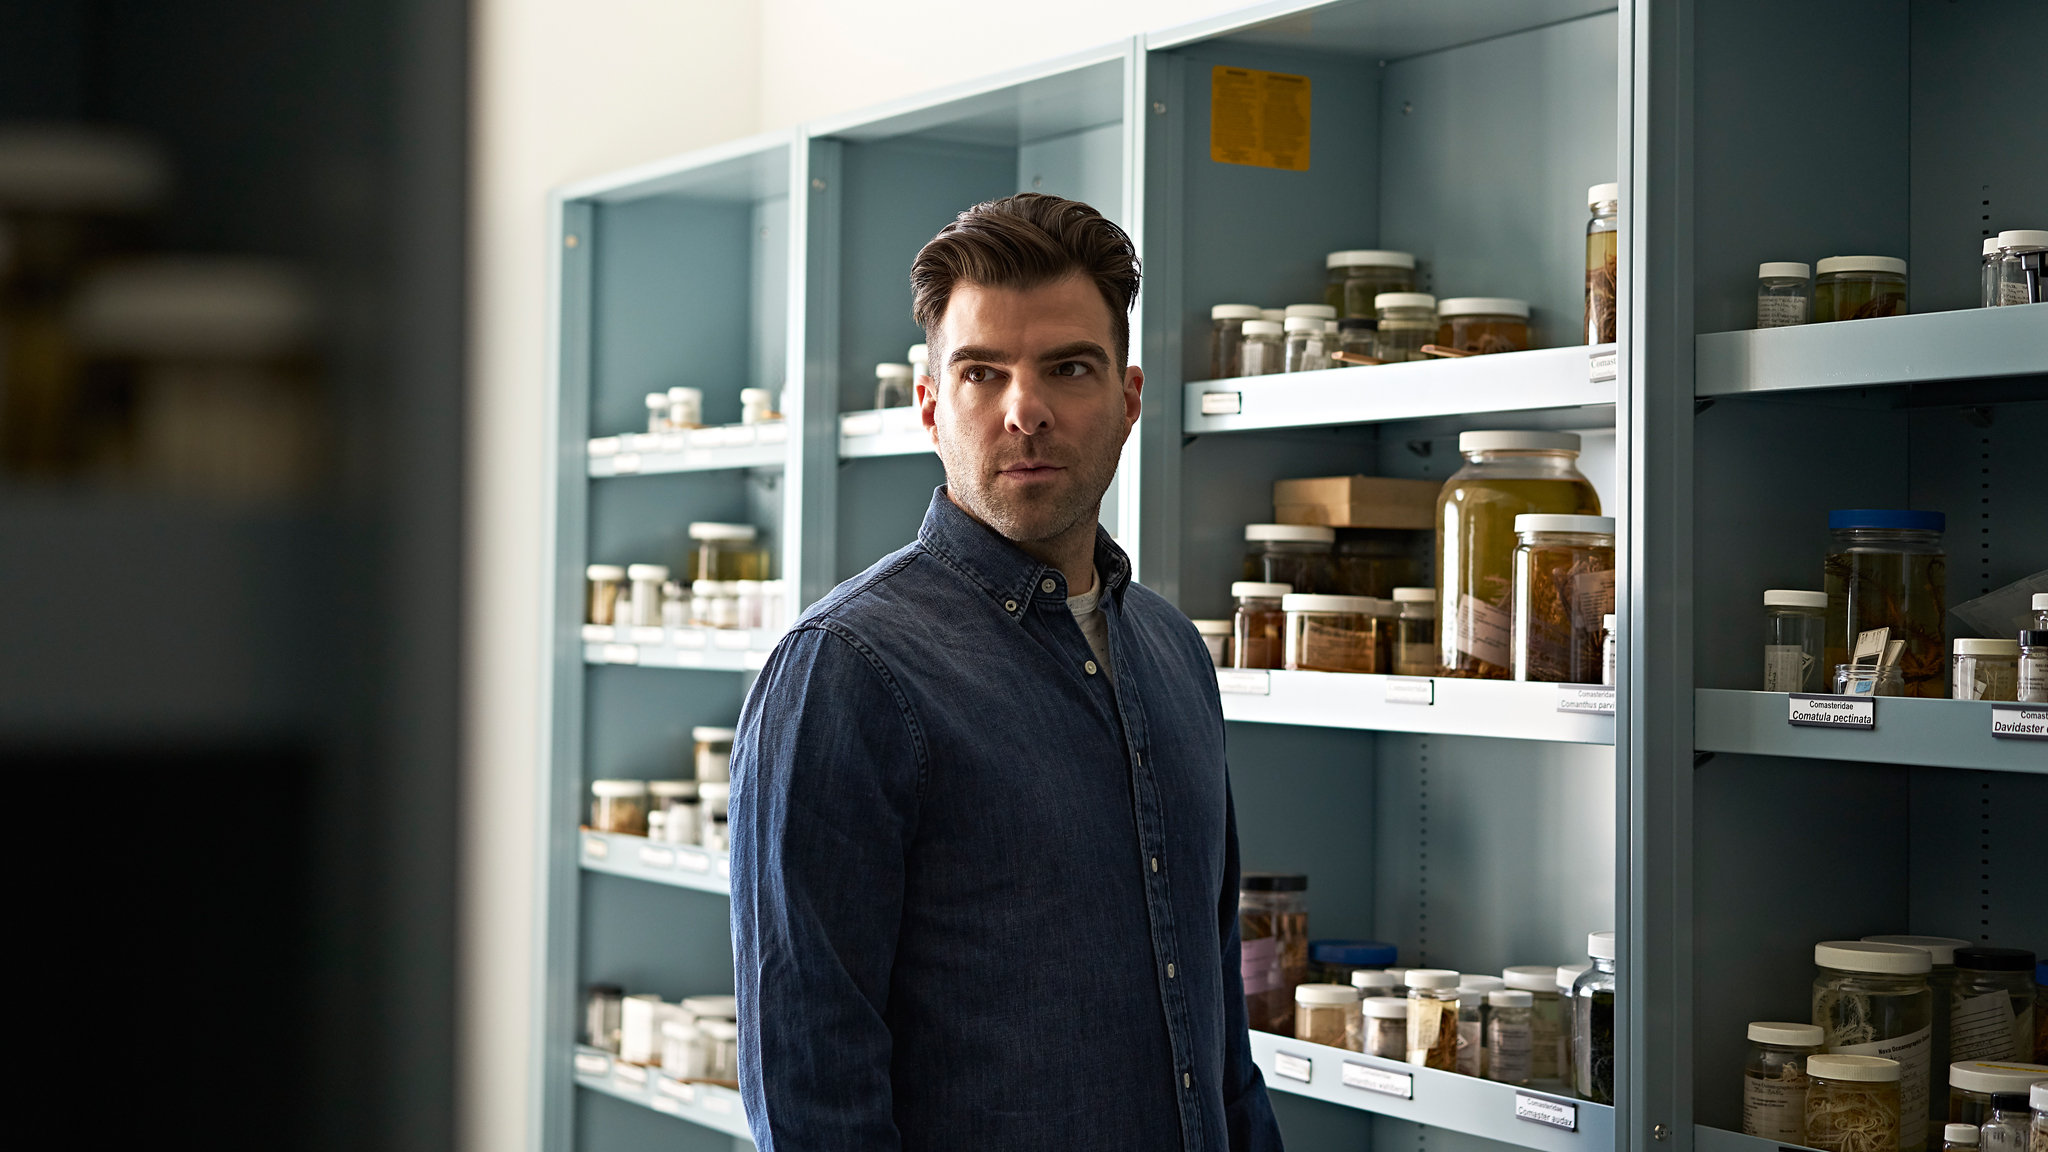 Zachary Quinto Reveals the Mysteries that Surprised Him Most in the New Series 'In Search Of'